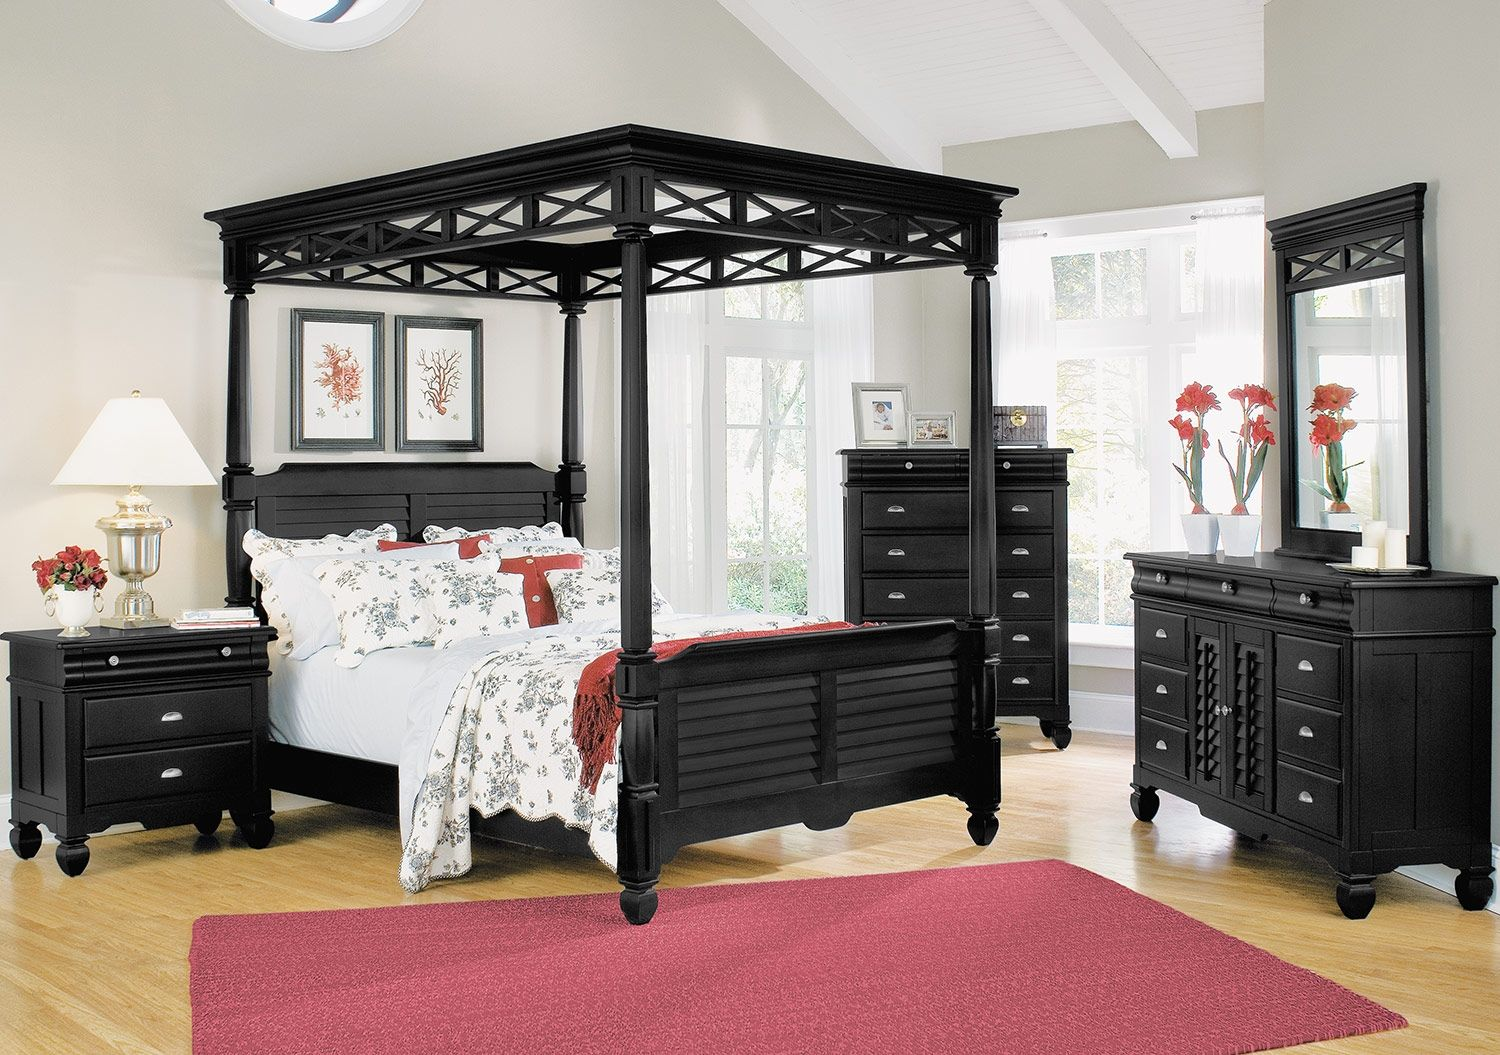 Bedroom furniture plantation cove black canopy queen bed - Black queen bedroom furniture set ...